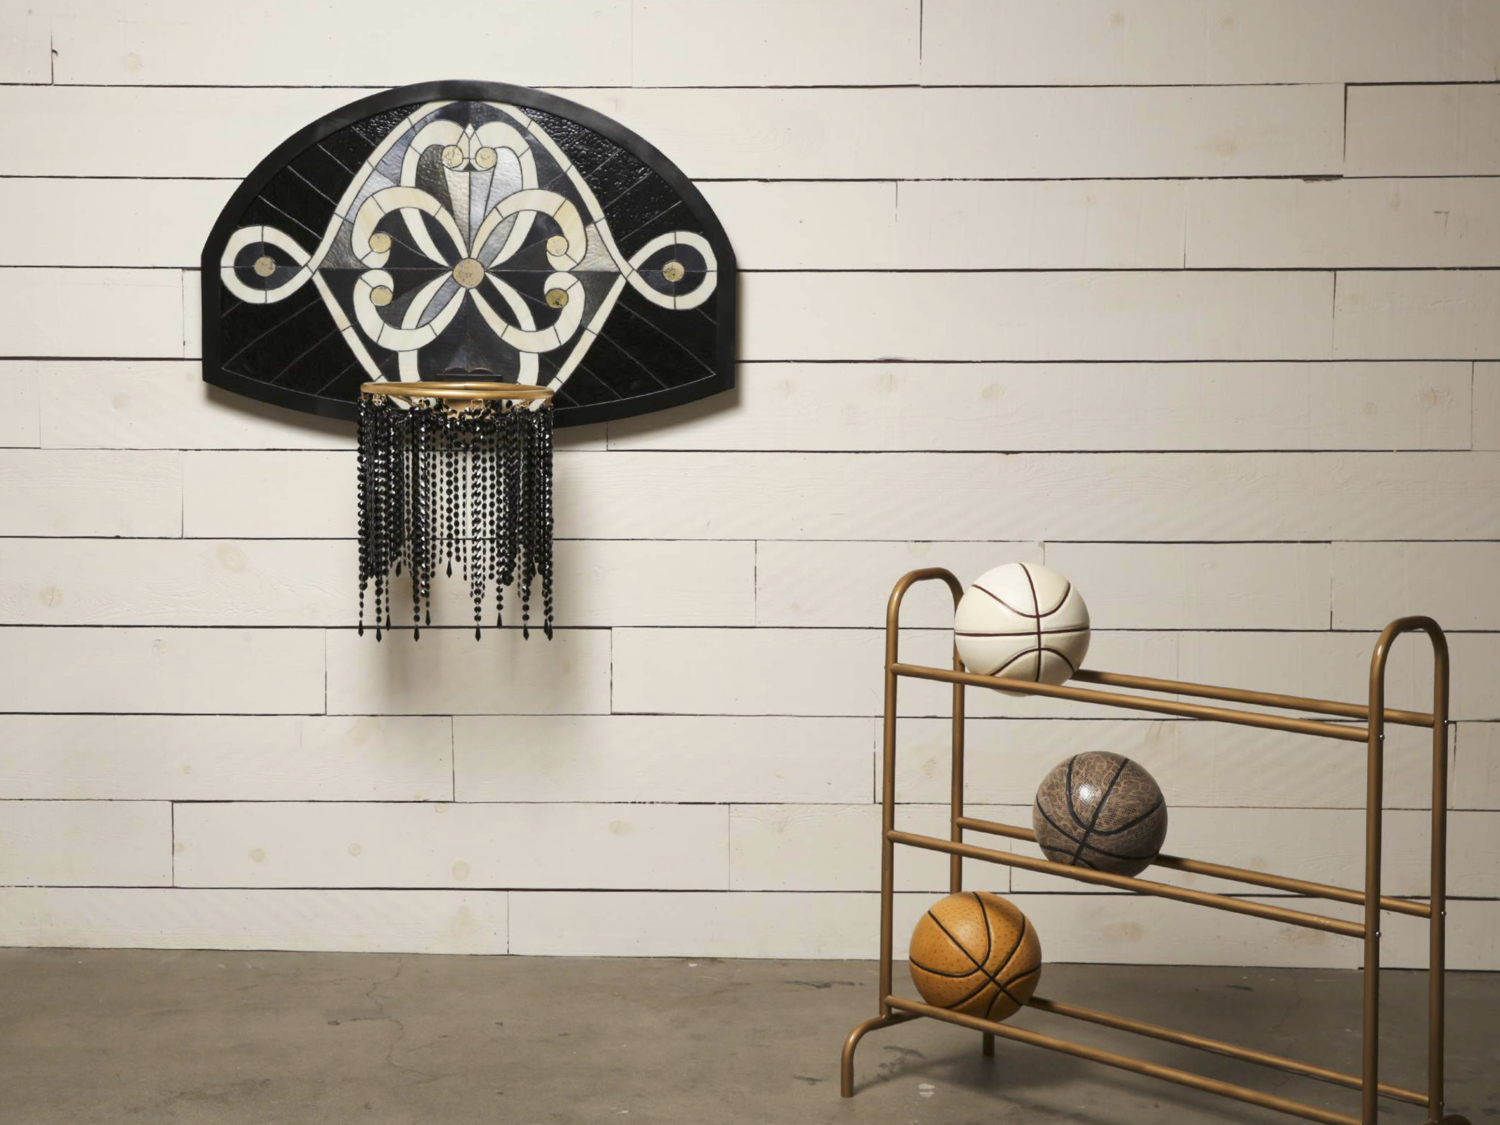 Basketball Hoop, by Victor Solomon